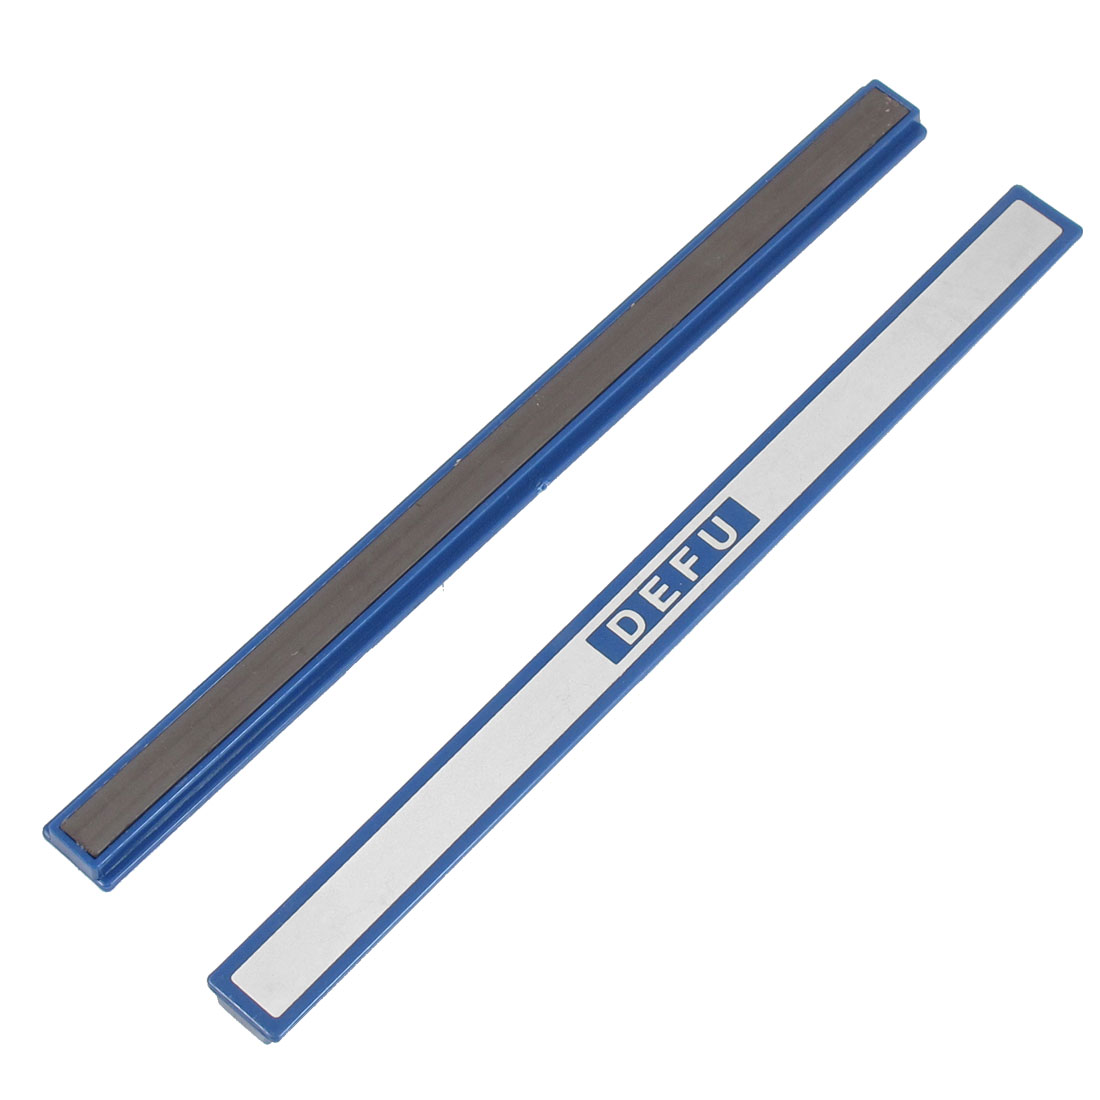 2 Pcs Office Dark Blue Plastic Whiteboard Magnetic Stripes Bars 7.8""